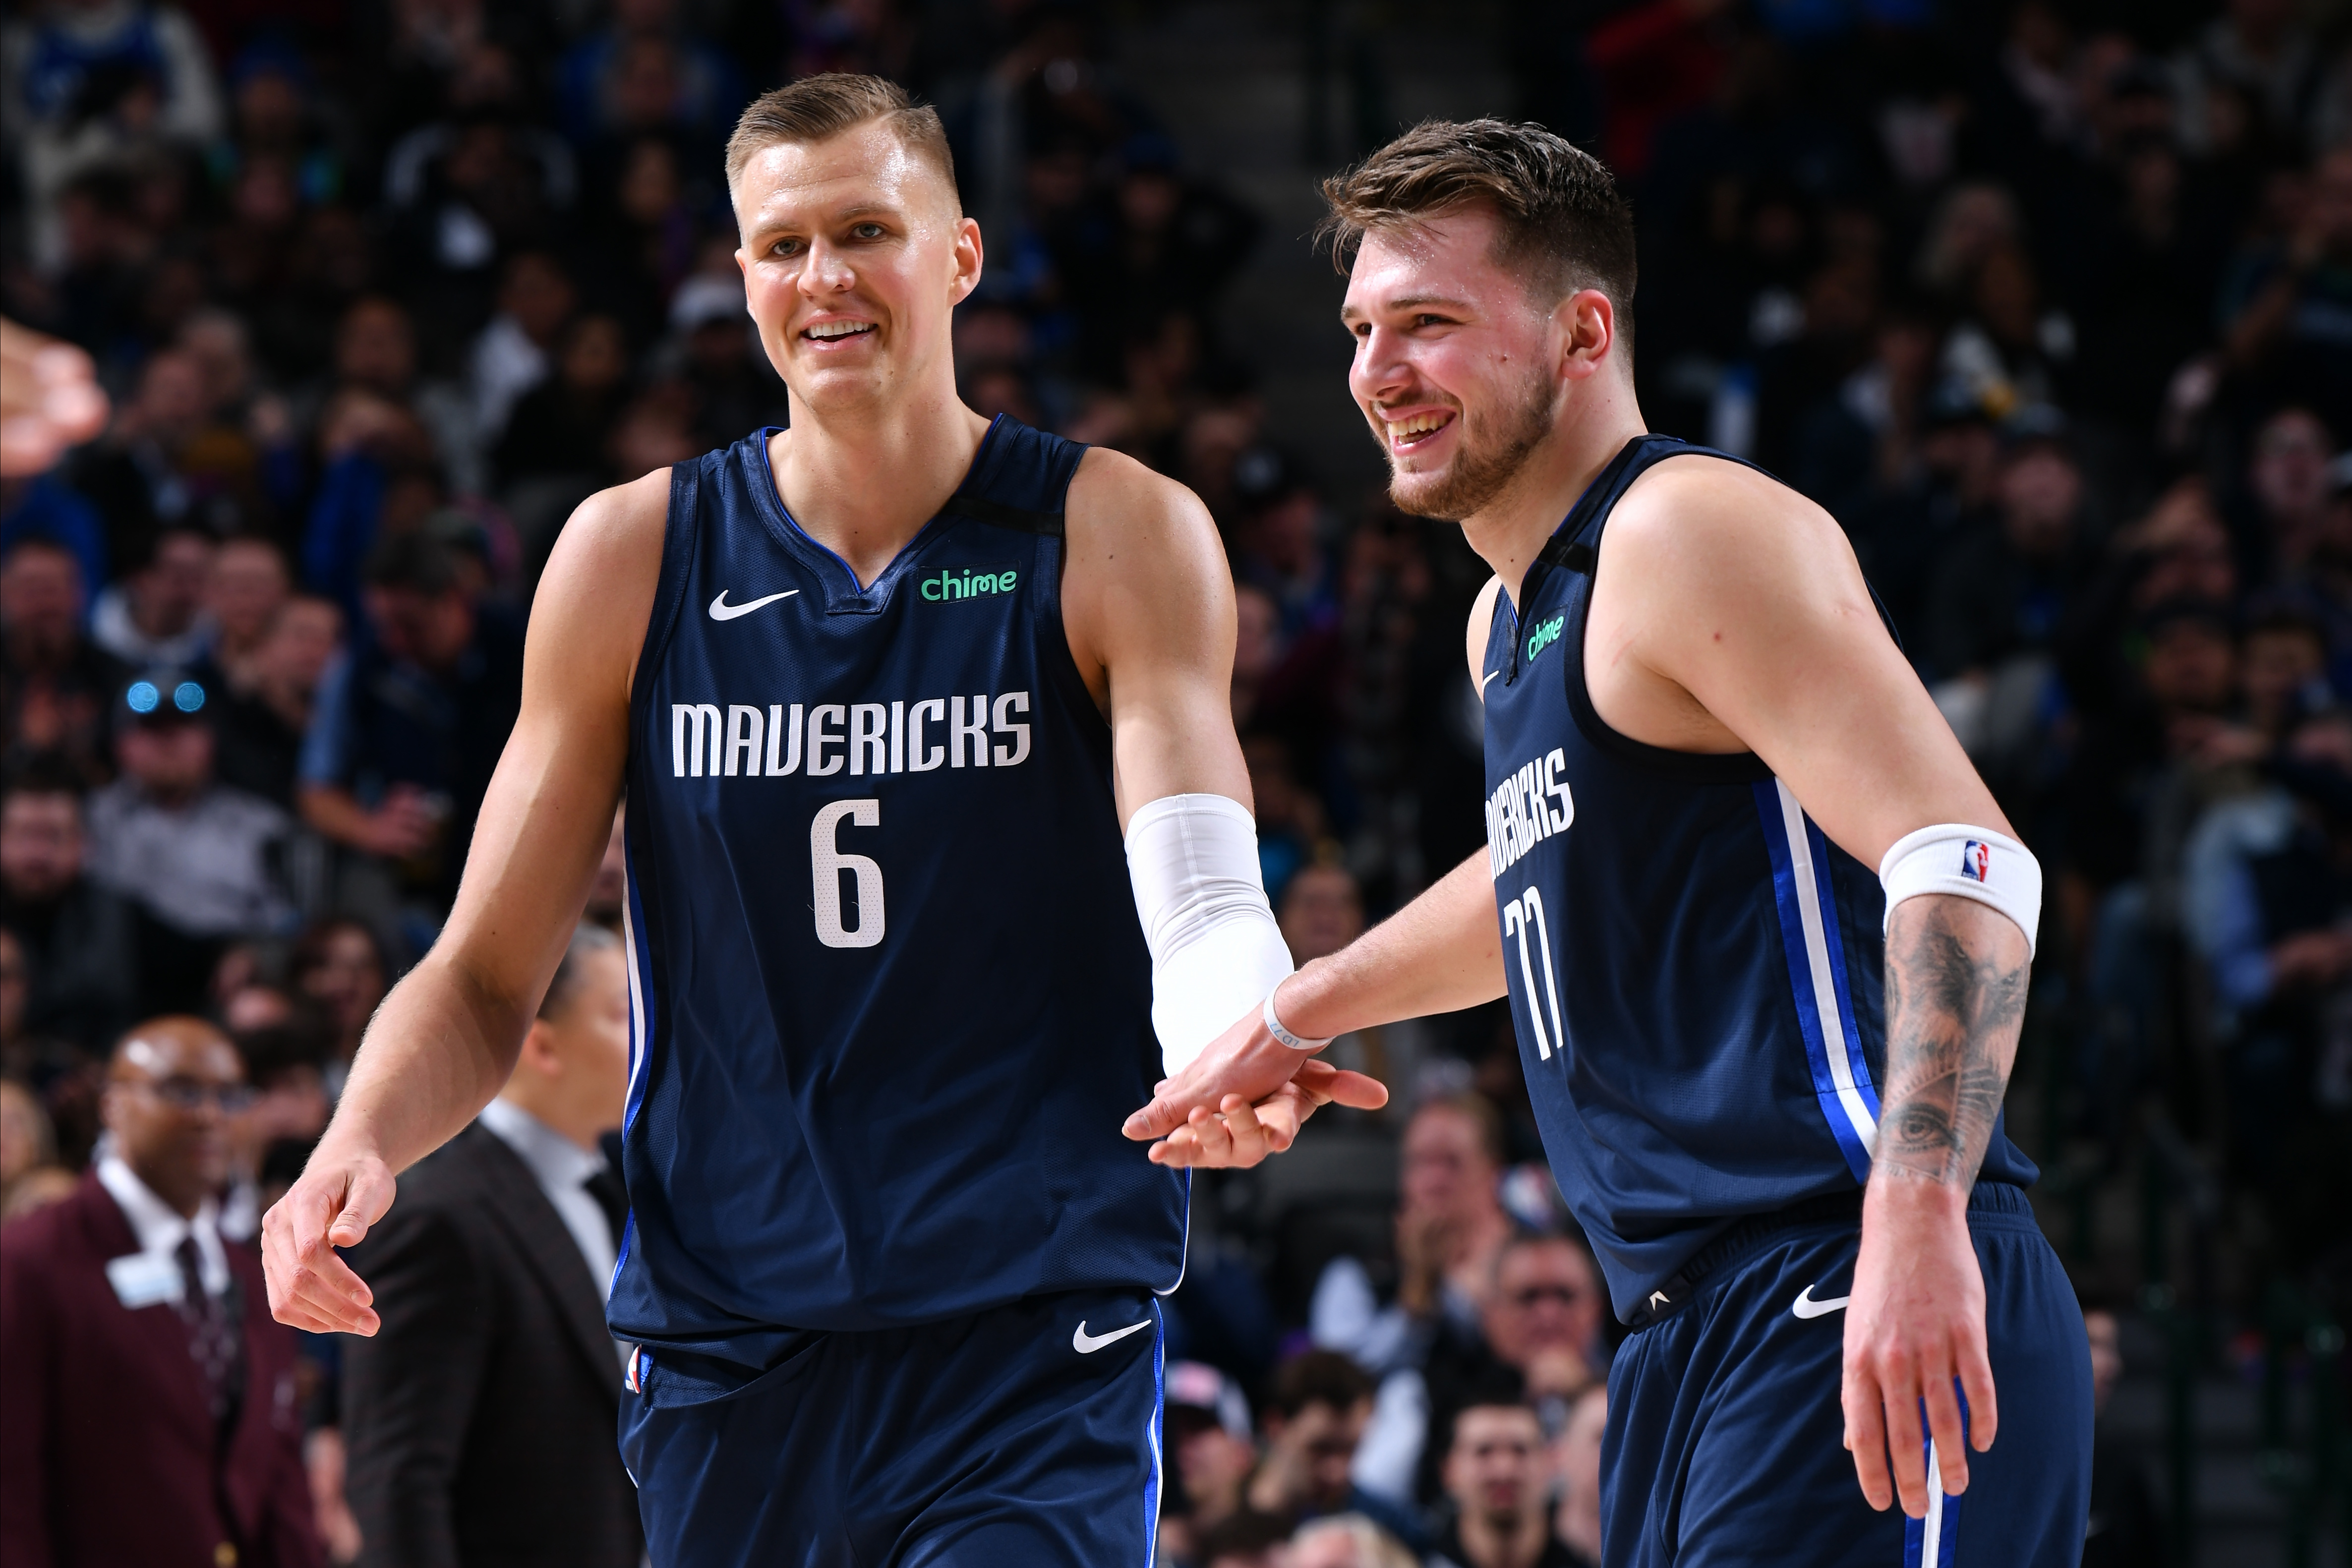 Luka Doncic and Kristaps Porzingis